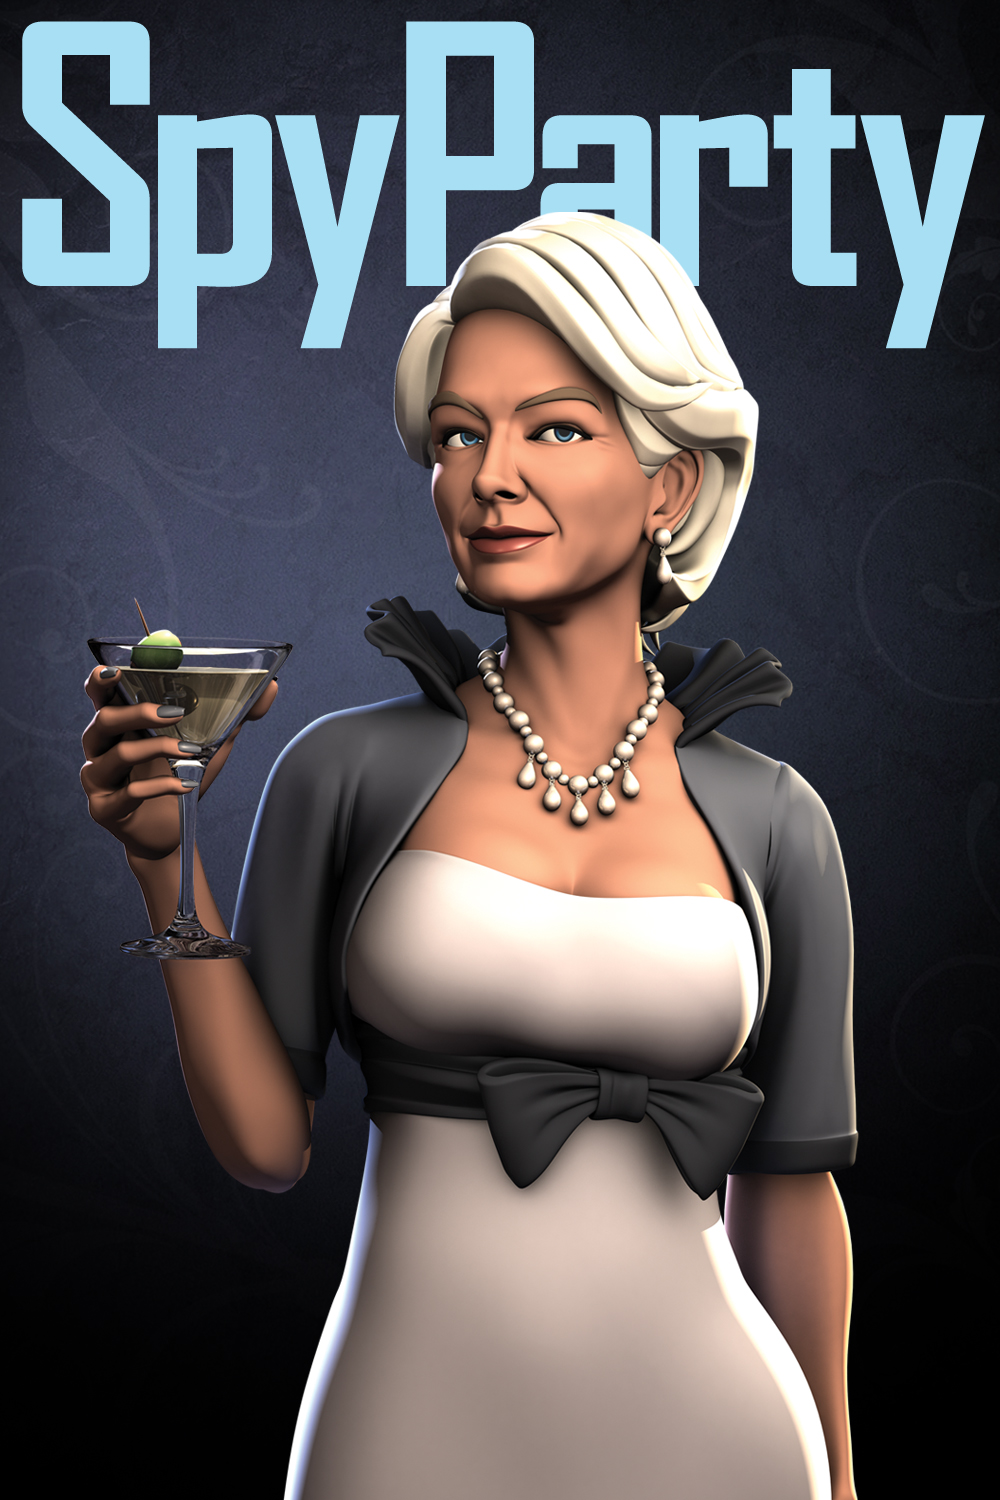 Game characters inspired by fashion mags and <em>The Incredibles</em>? It ends up being Helen Mirren-esque.